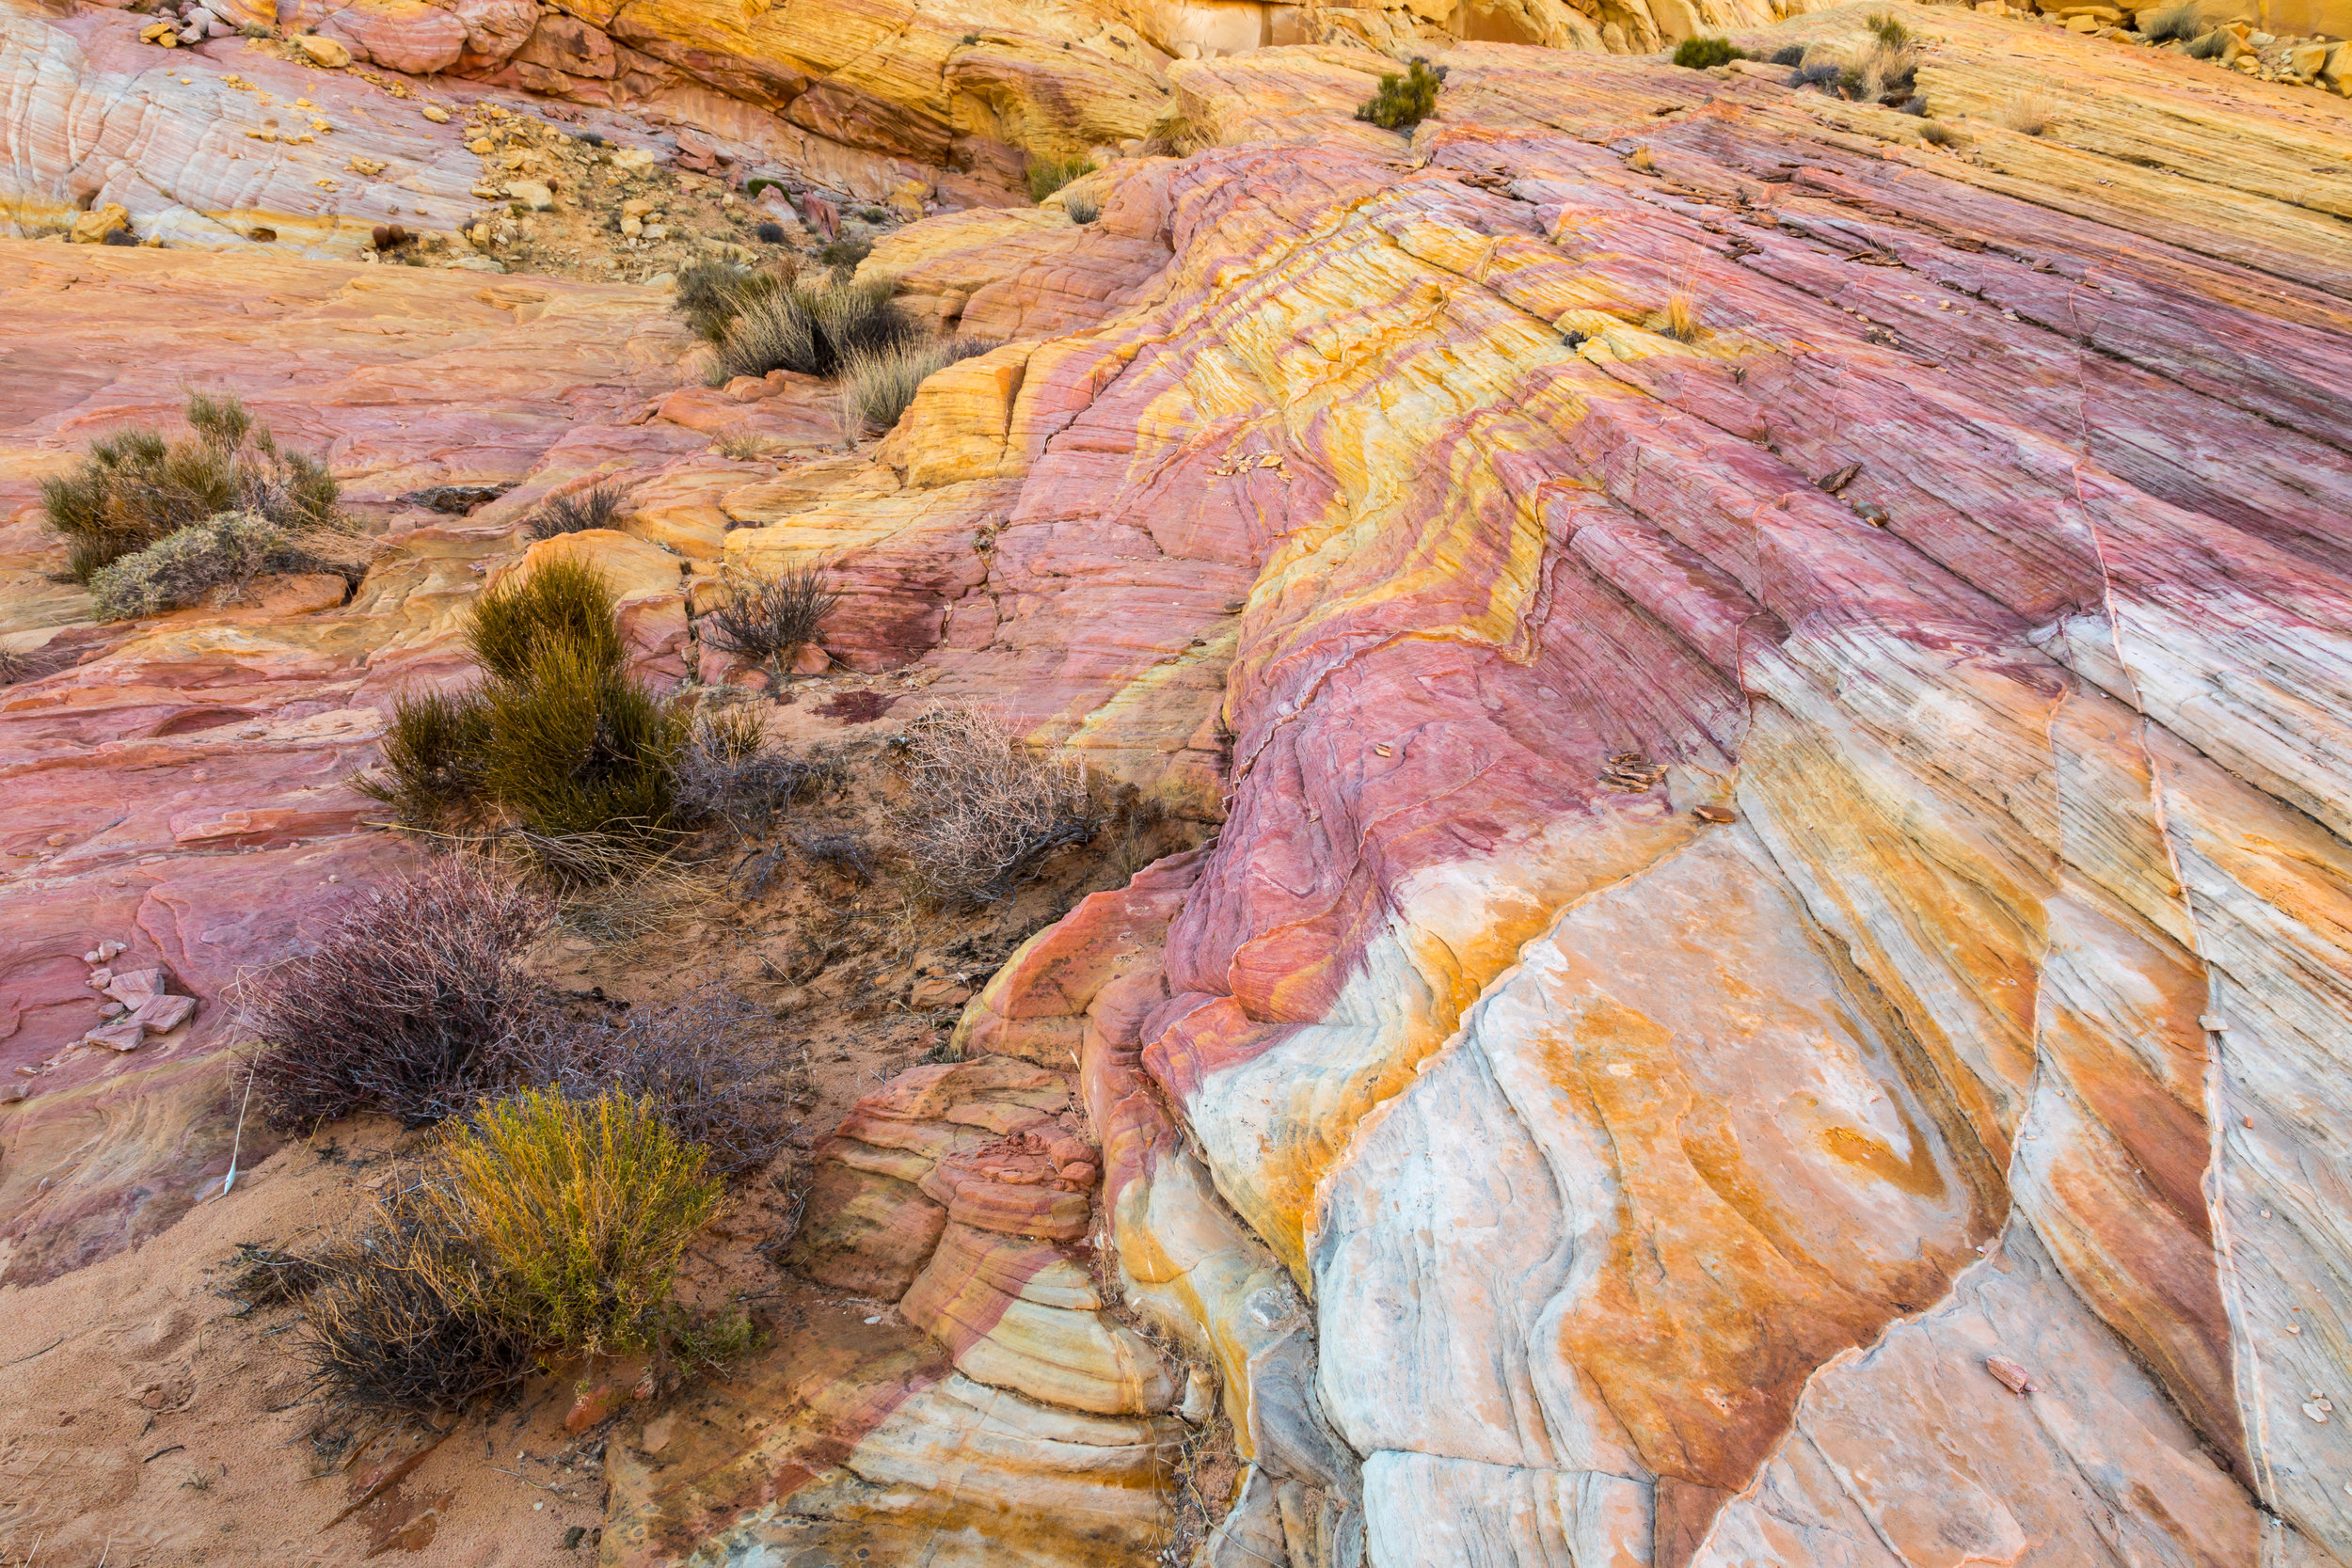 Valley of Fire, Image # 2273